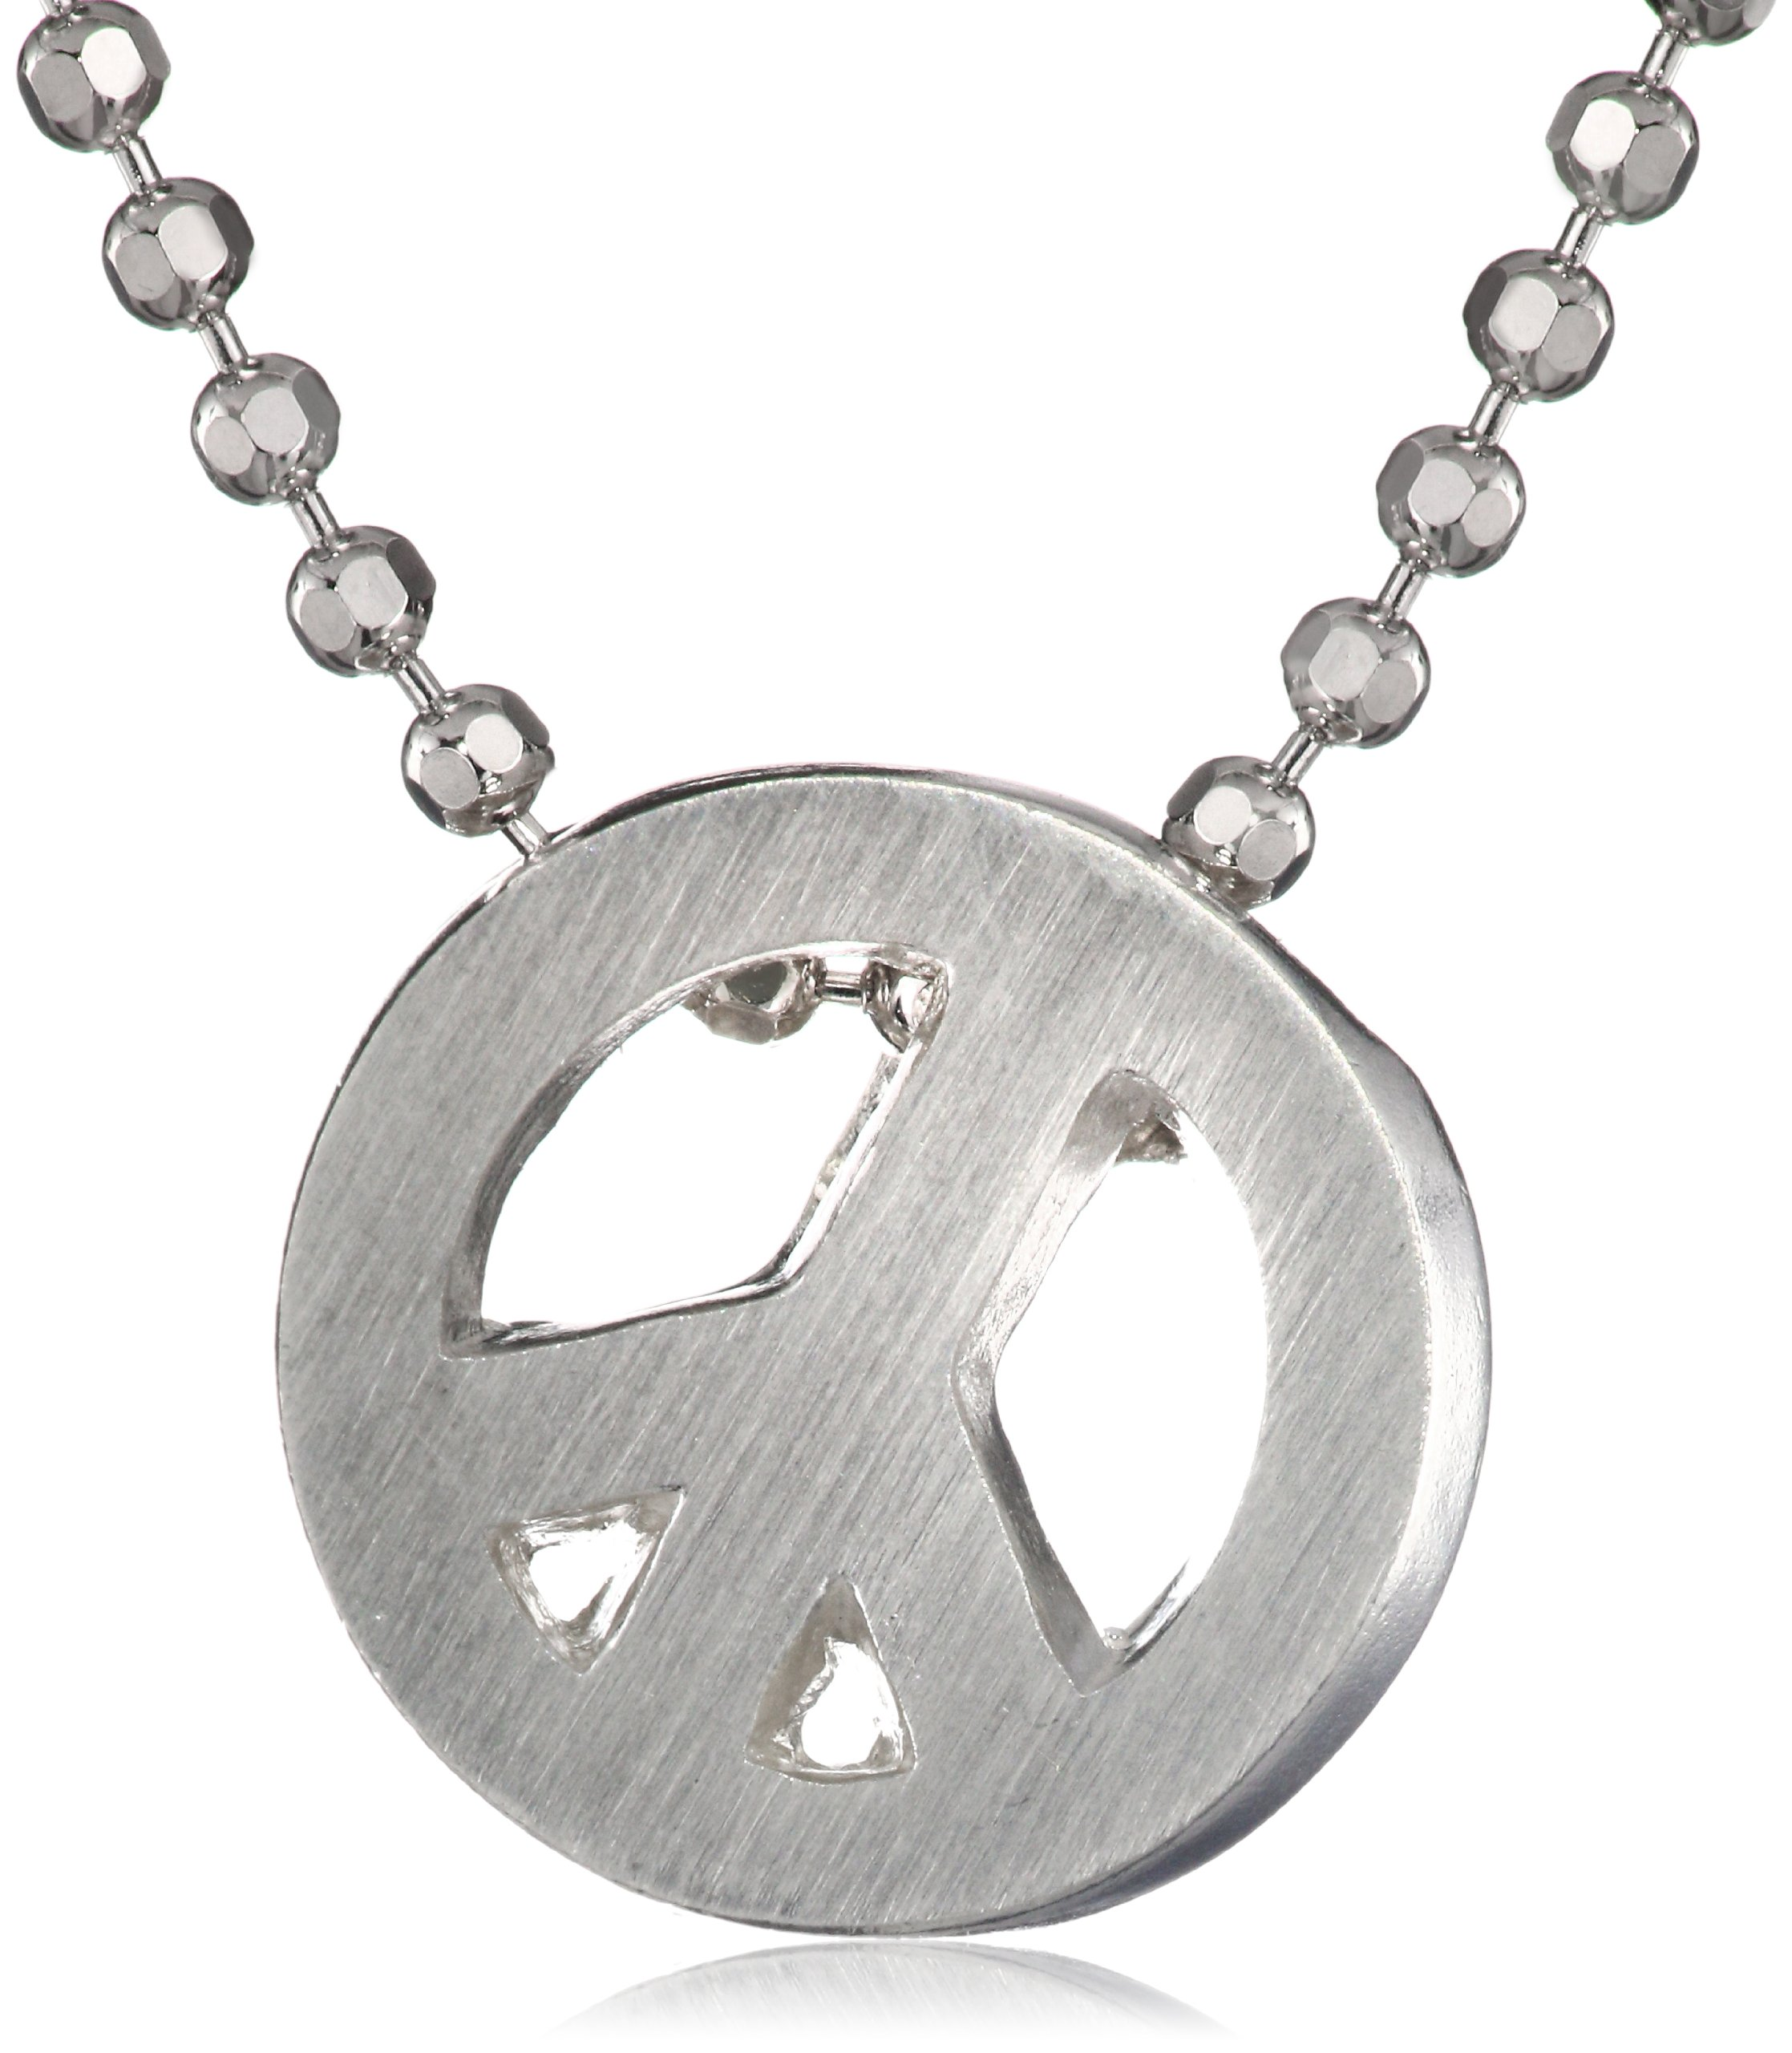 Alex Woo Little Faith Sterling Silver Peace Sign Pendant Necklace by Alex Woo (Image #1)